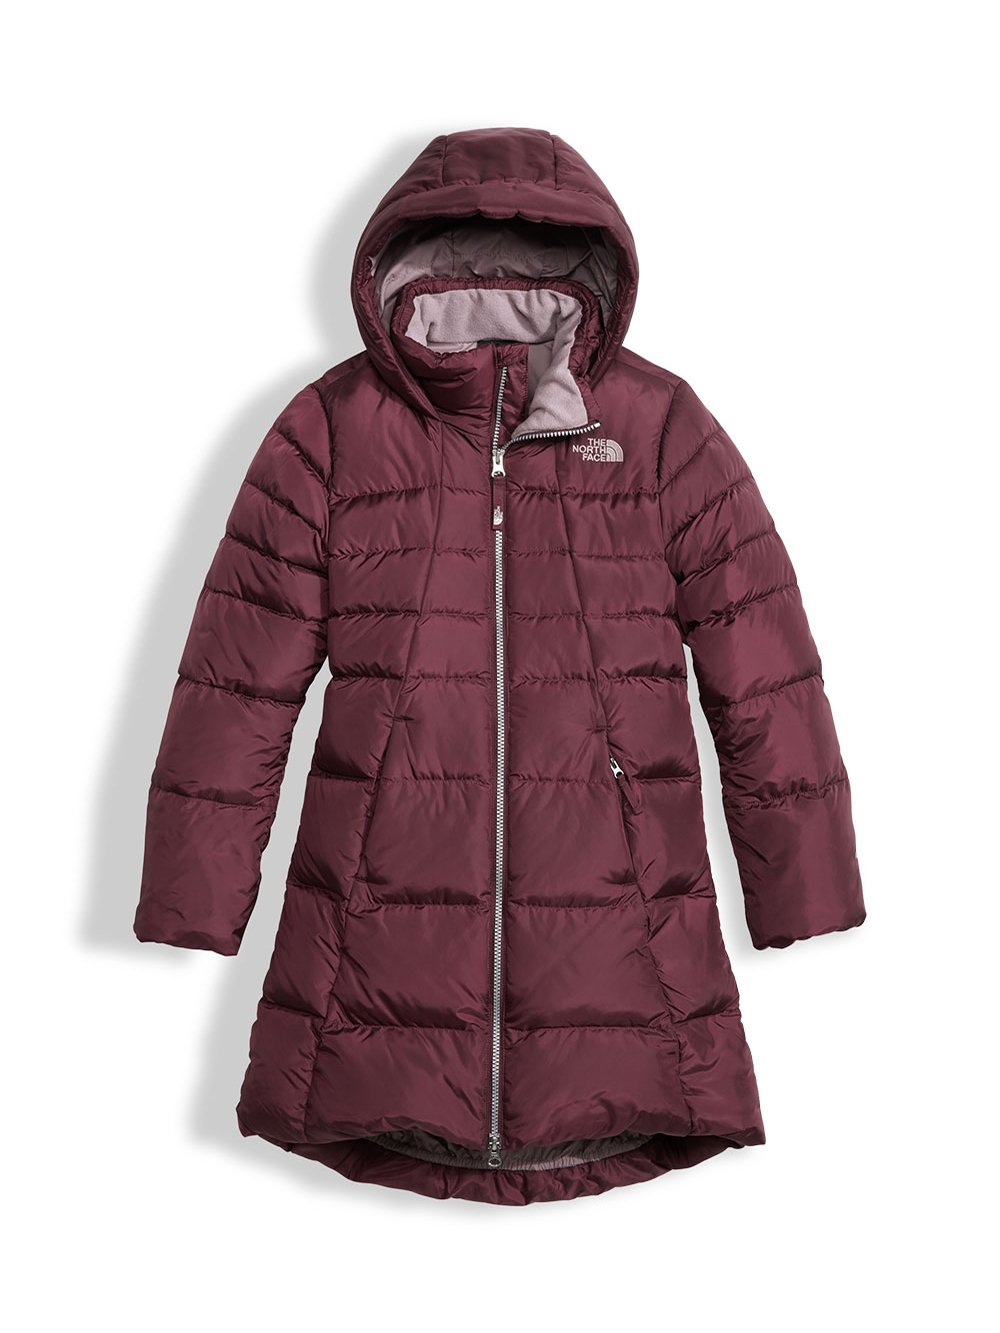 The North Face Youth Girls' Elisa Down Parka - zinfandel red, xs/6